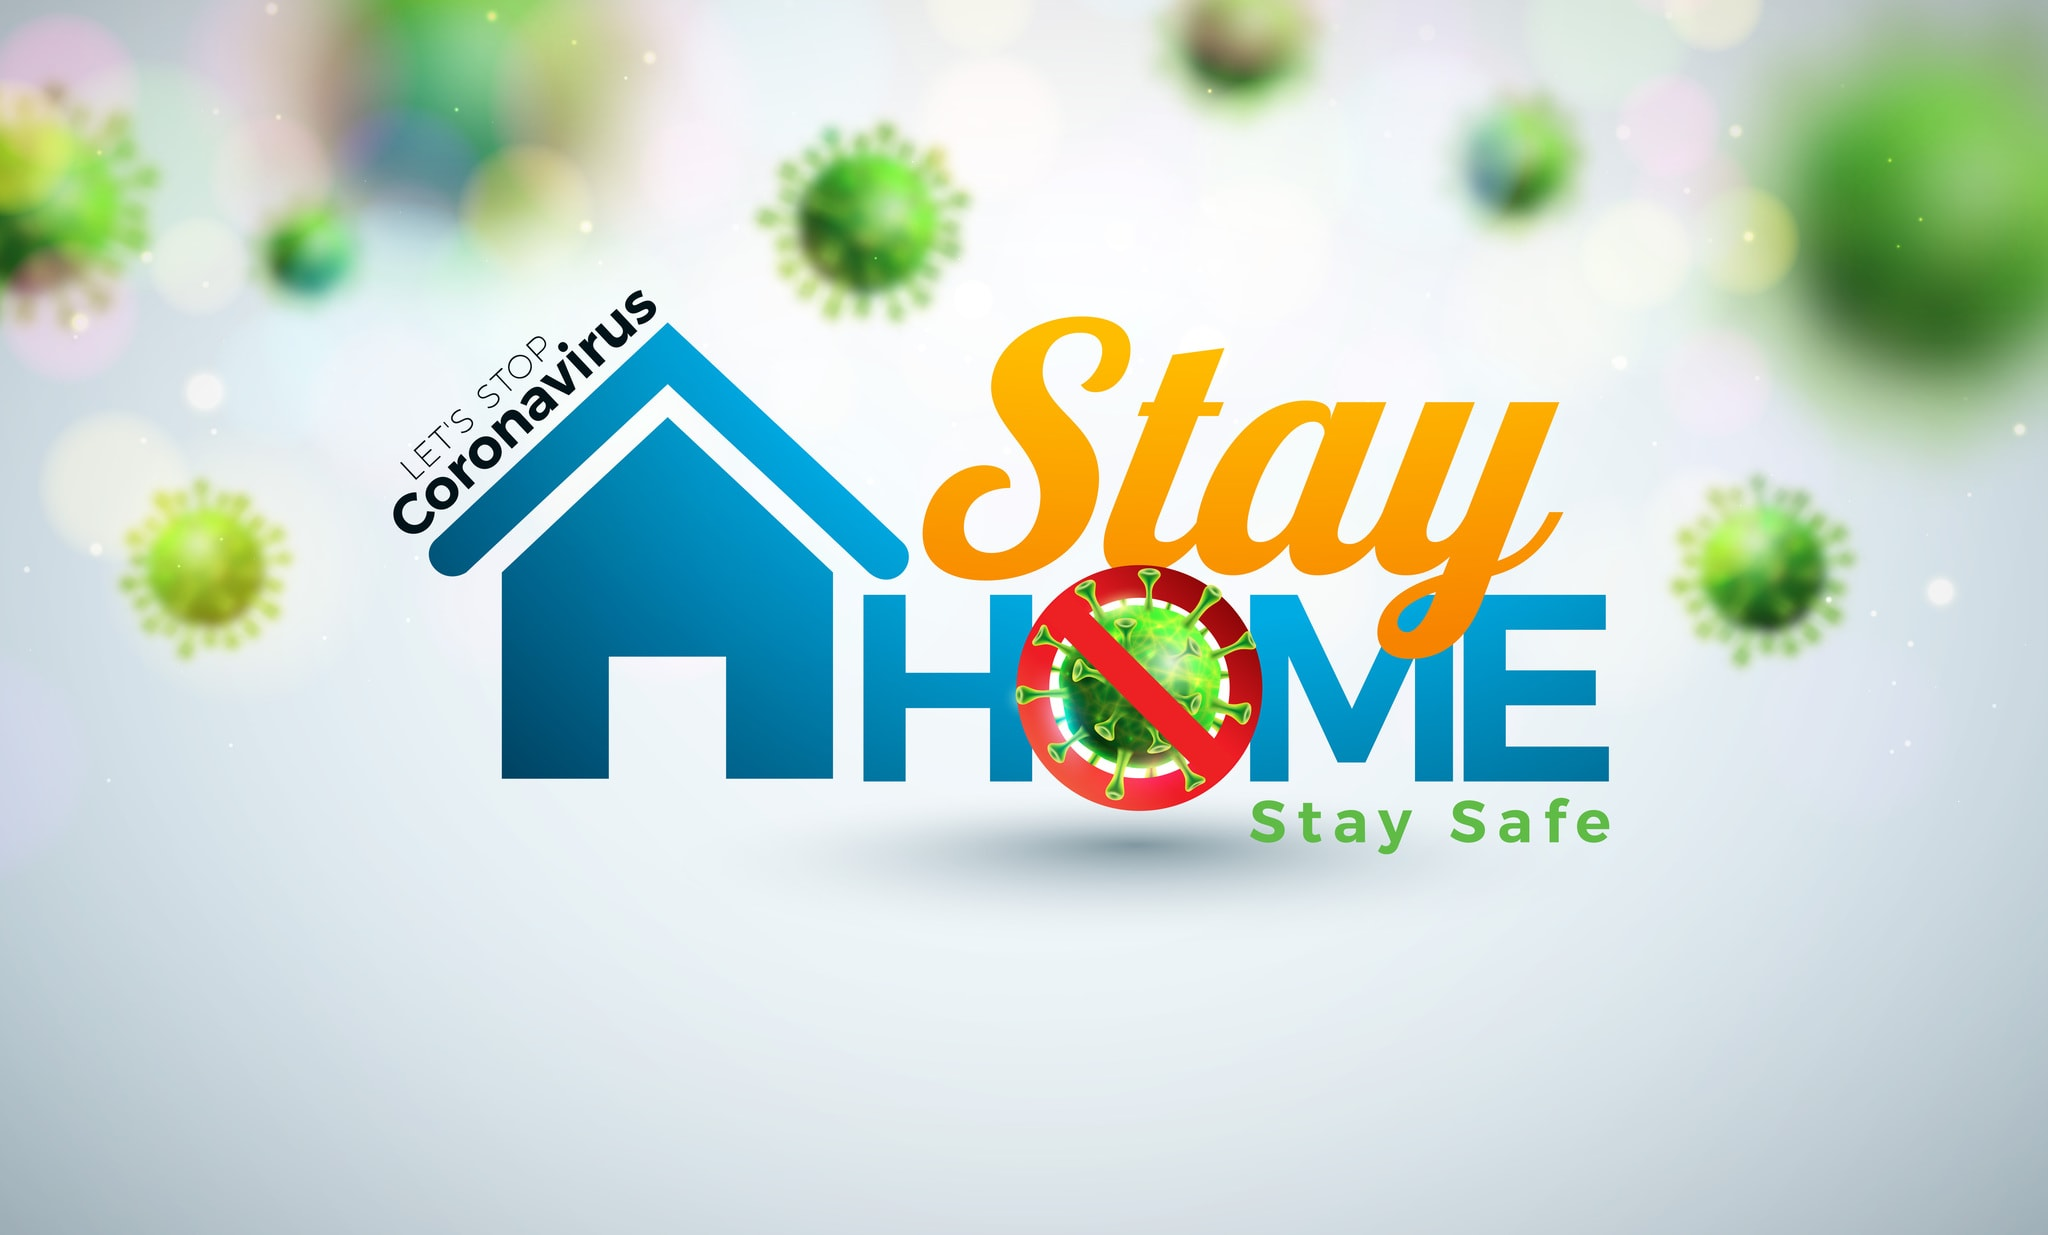 Stay Home. Stop Coronavirus Design with Covid-19 Virus and House on Light Background. Vector 2019-ncov Corona Virus Outbreak Illustration on Dangerous SARS Epidemic Theme for Banner.